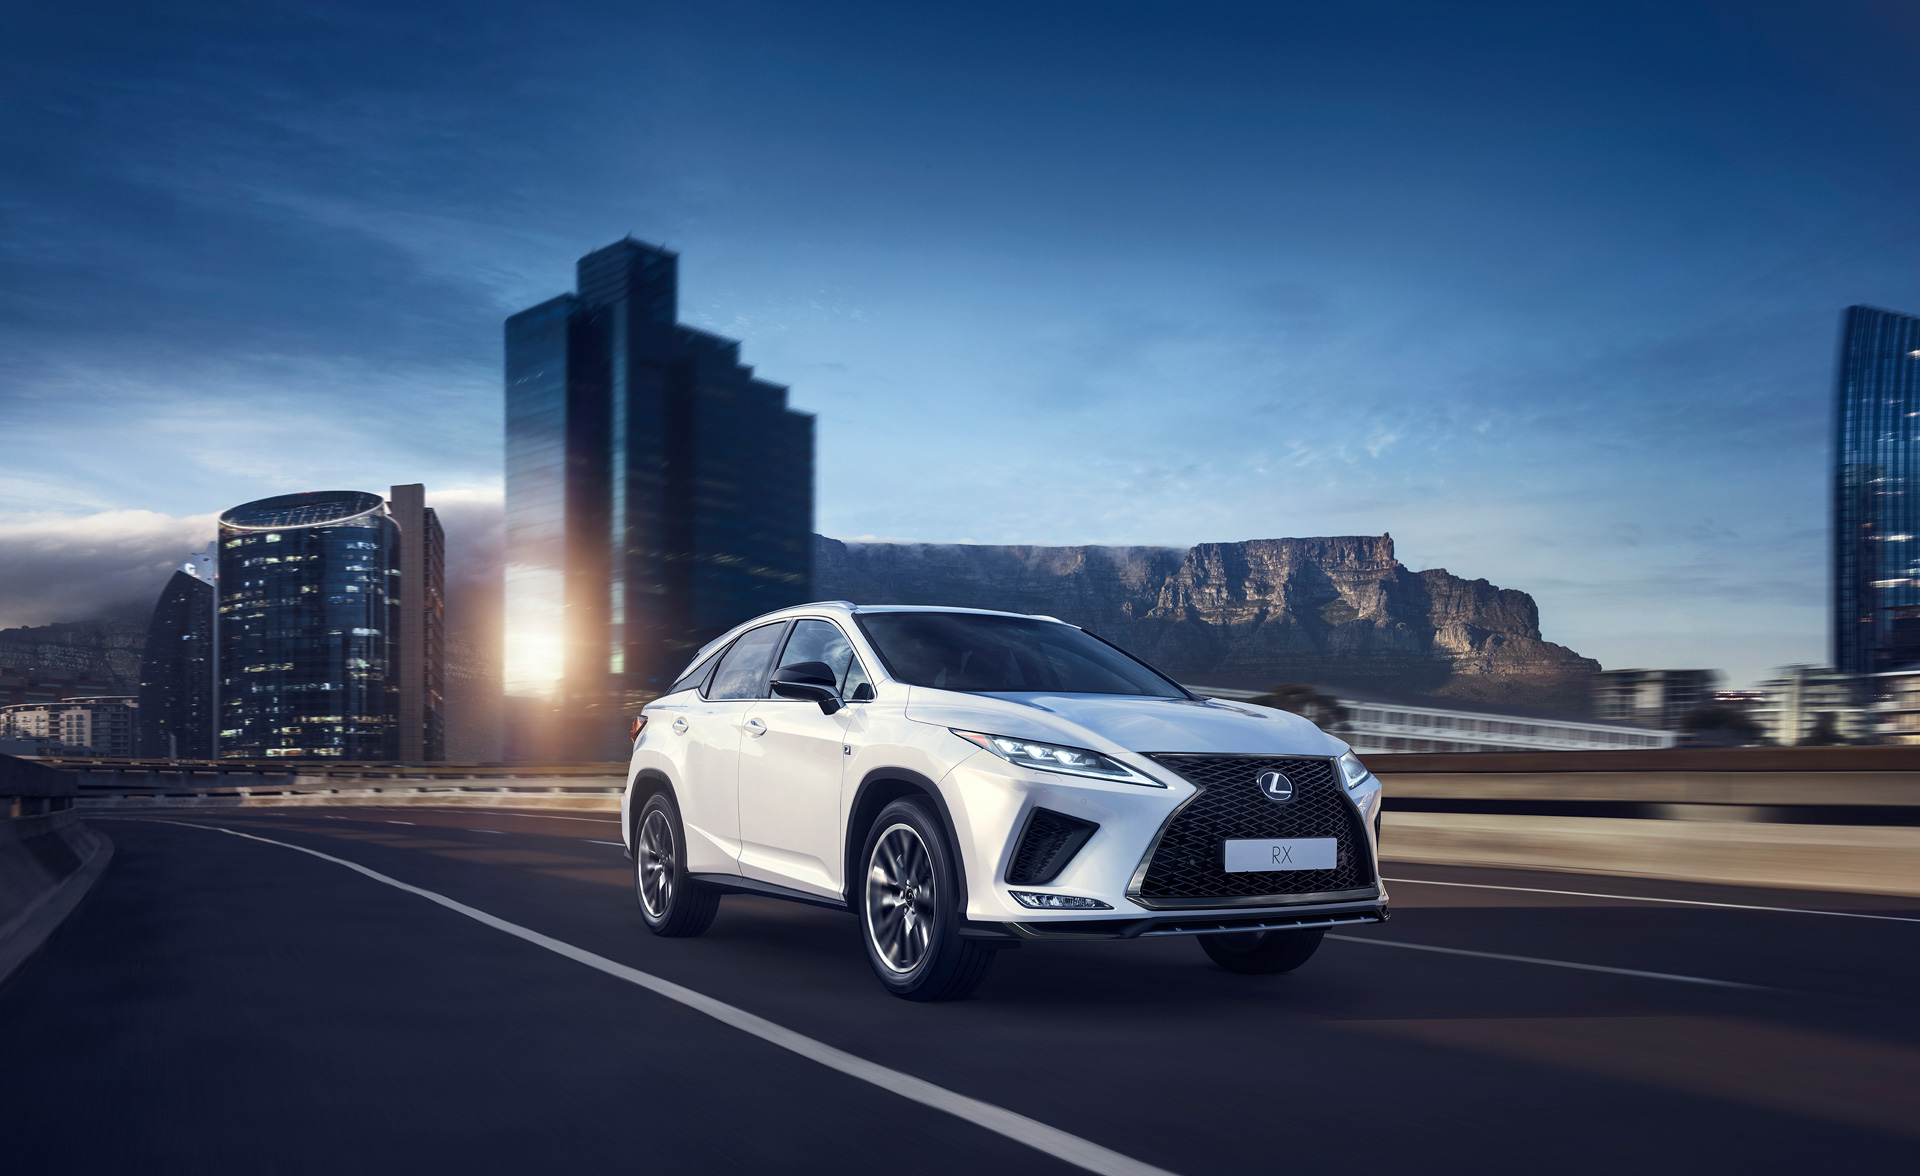 New Lexus RX Makes World DebutThe Pioneer of the Luxury SUV Segment Evolves to New Heights Equipped with the Latest Technology - Image 5